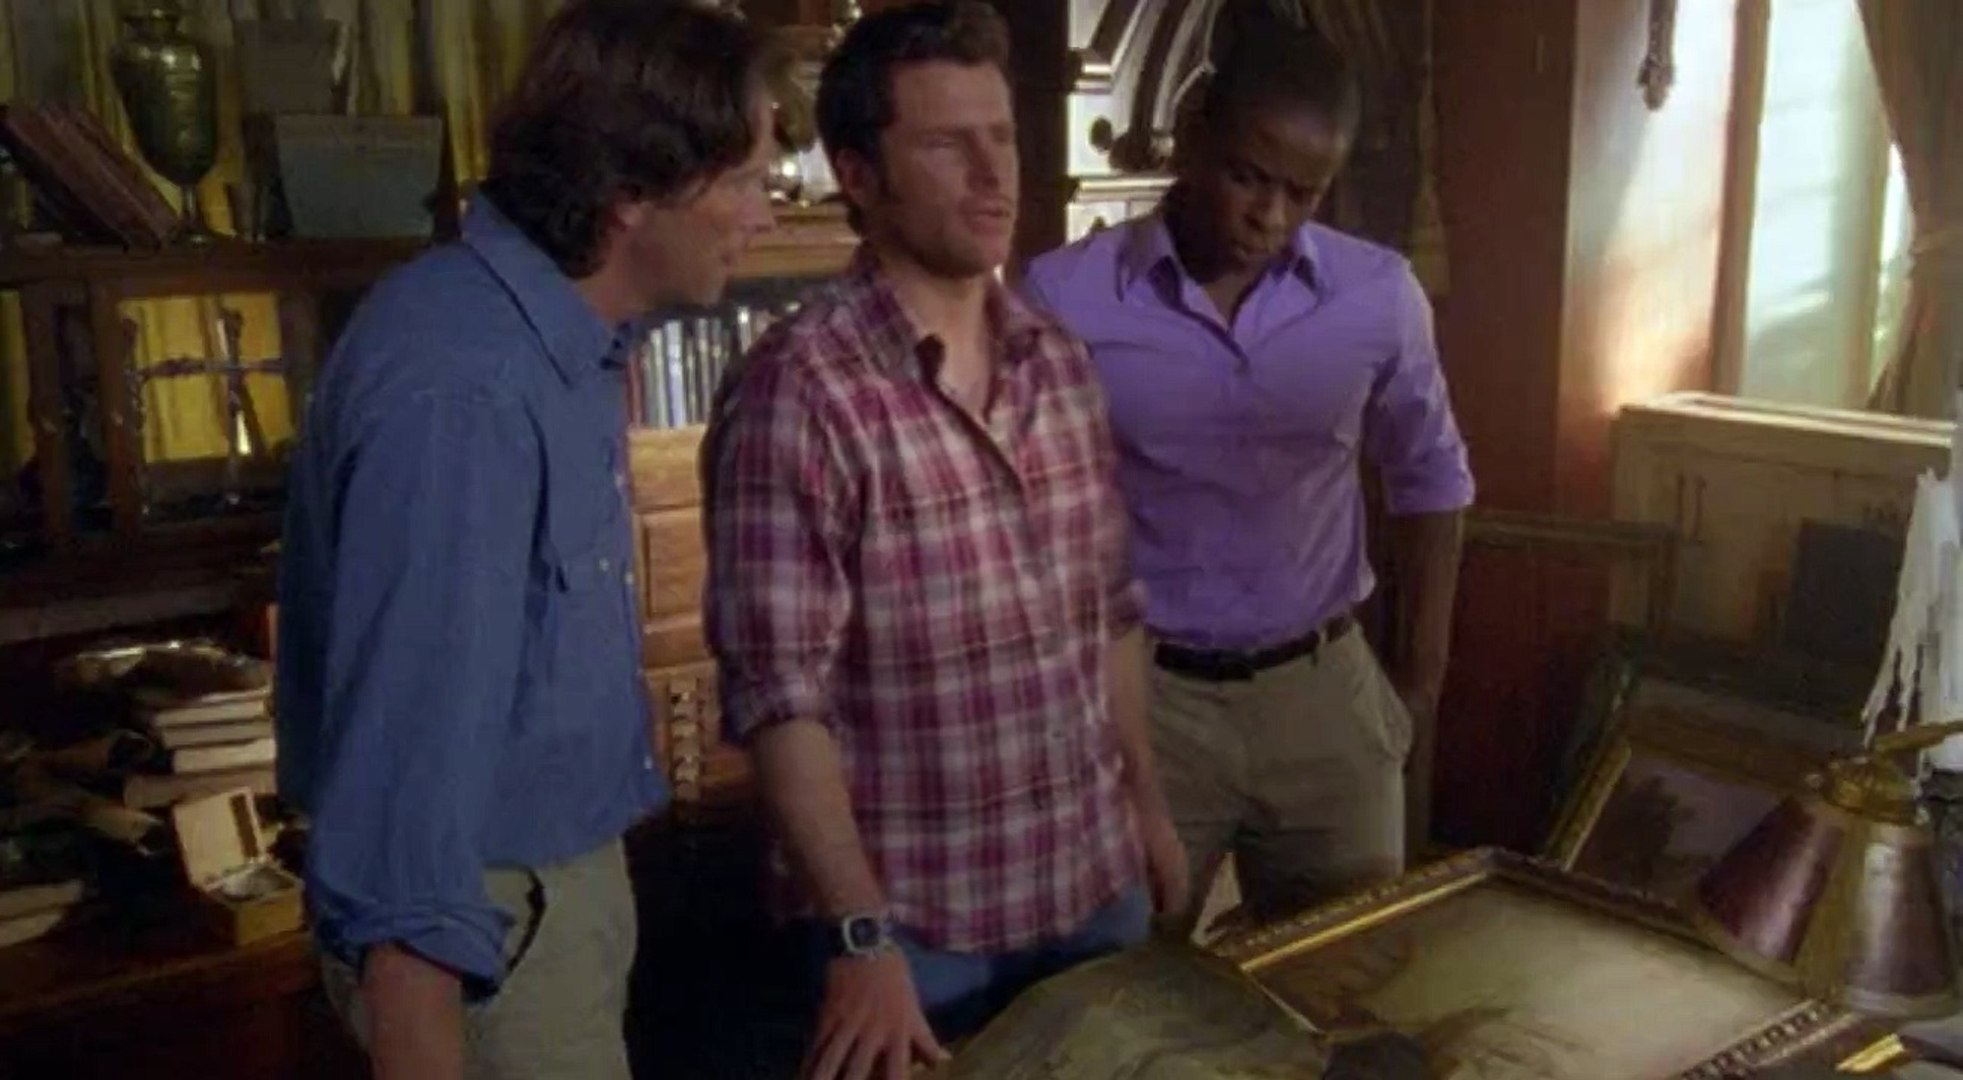 Psych - S3 E4 - The Greatest Adventure in the History of Basic Cable